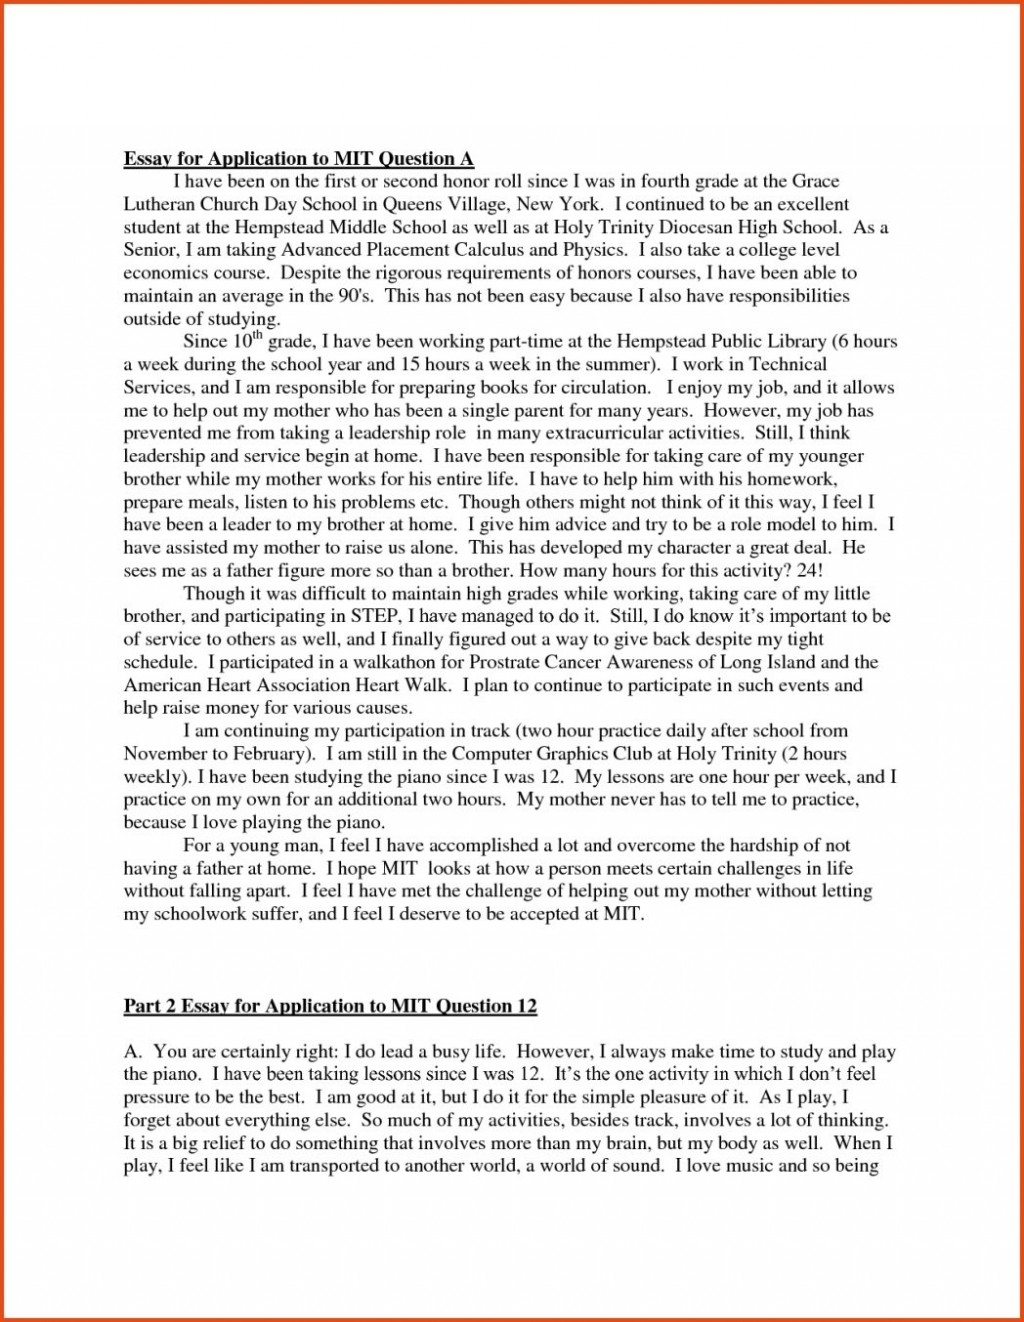 005 Essay Example College Admissions Samples Writings And Essays Examples Of Mit Admis Good Admission About Yourself Questions Application On Diversity Stirring 2017 Best Large